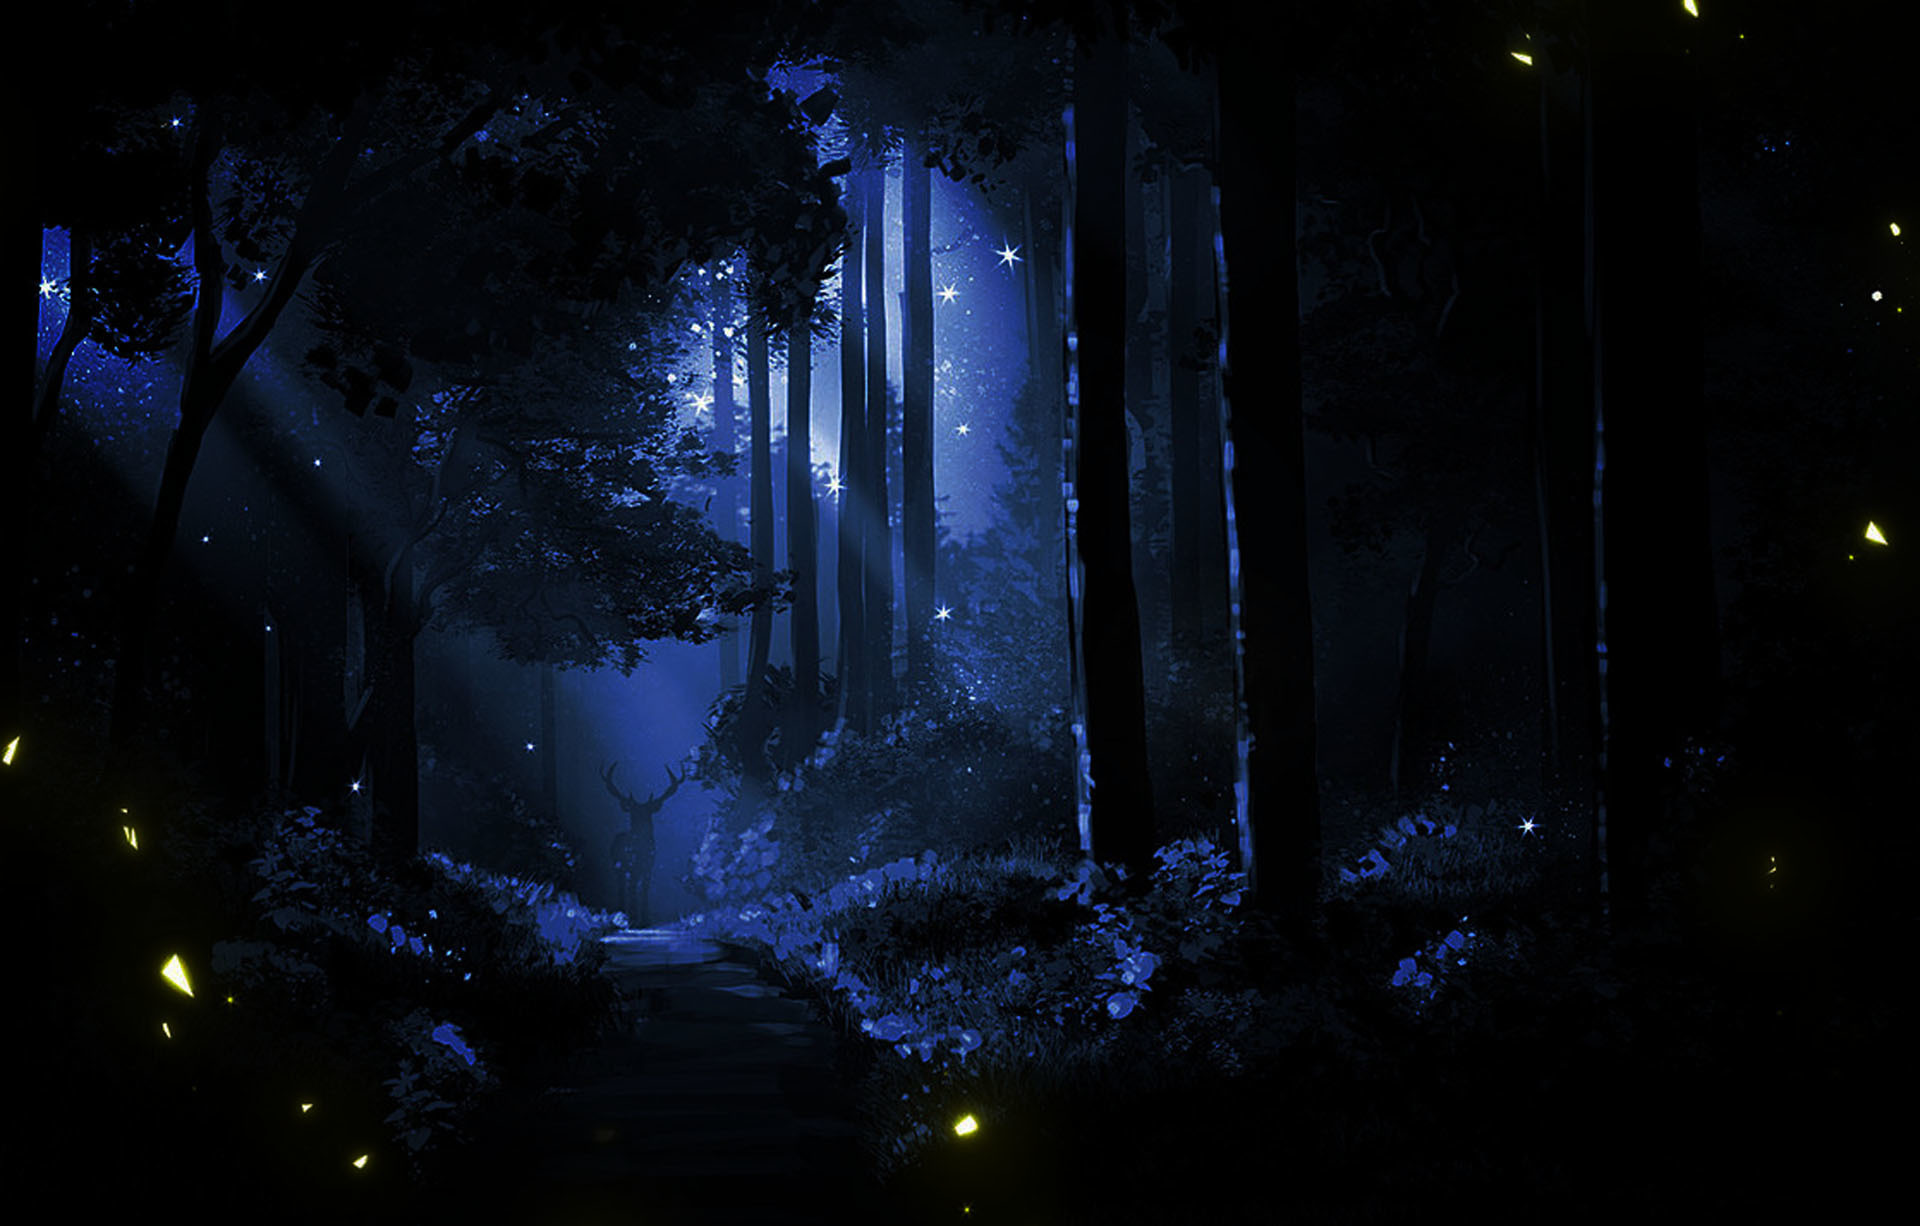 573210-Night Forest